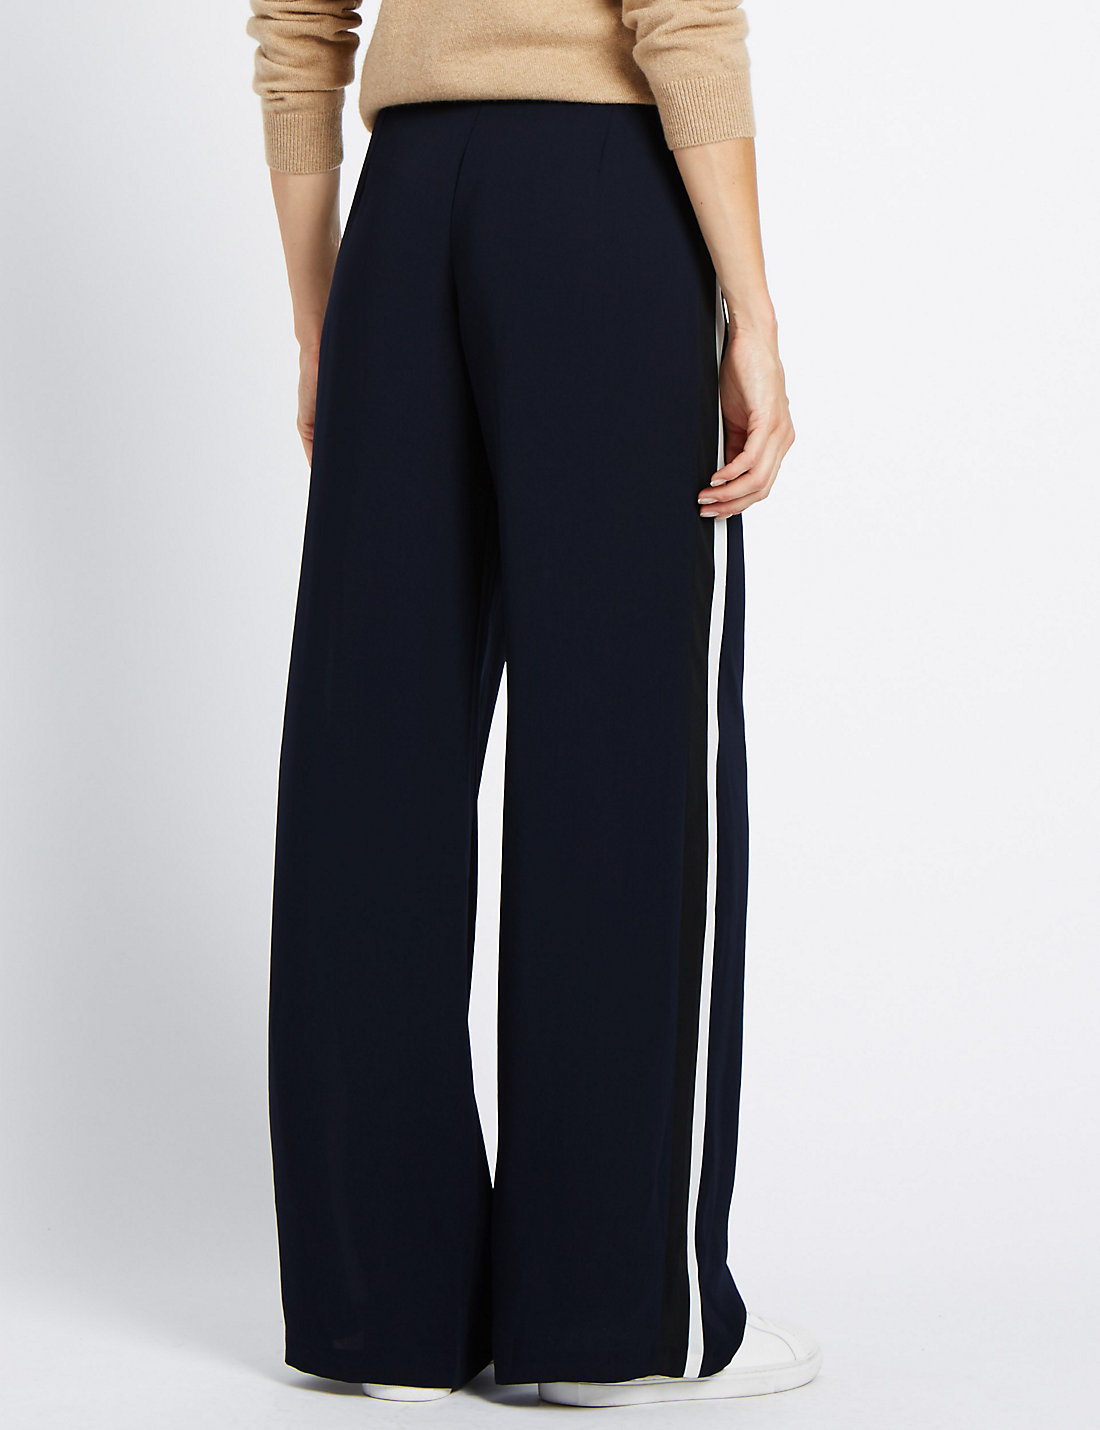 To Stripe Or Not To Stripe Wiwt Layering Up A Summer